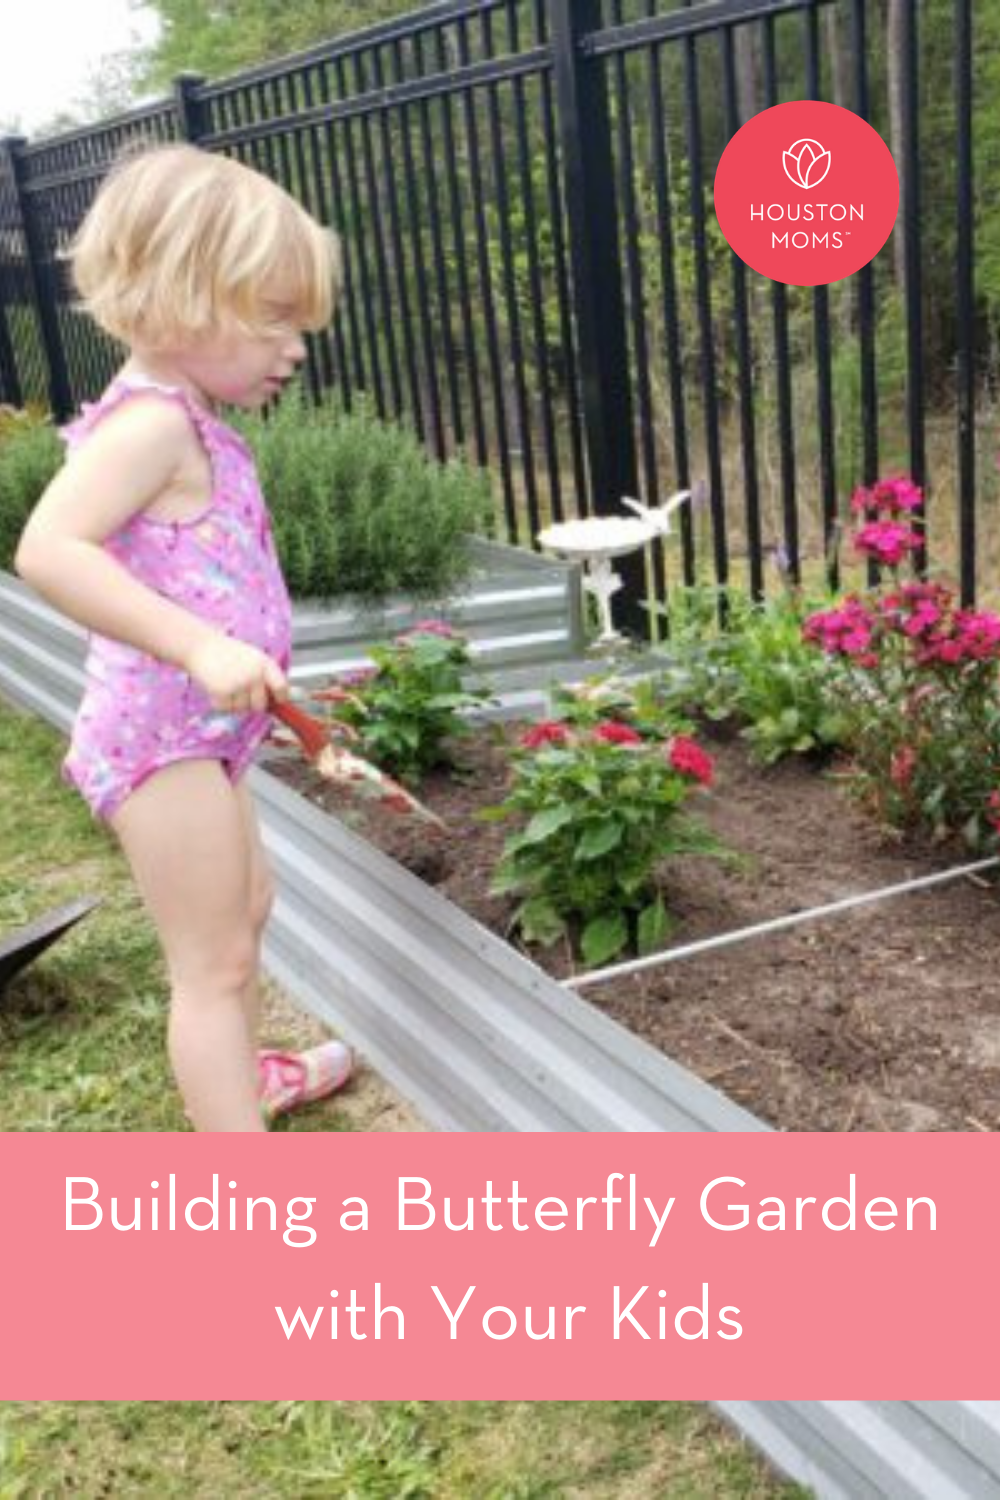 """Houston Moms """"Building a Butterfly Garden with Your Kids"""" #houstonmoms #momsaroundhouston"""